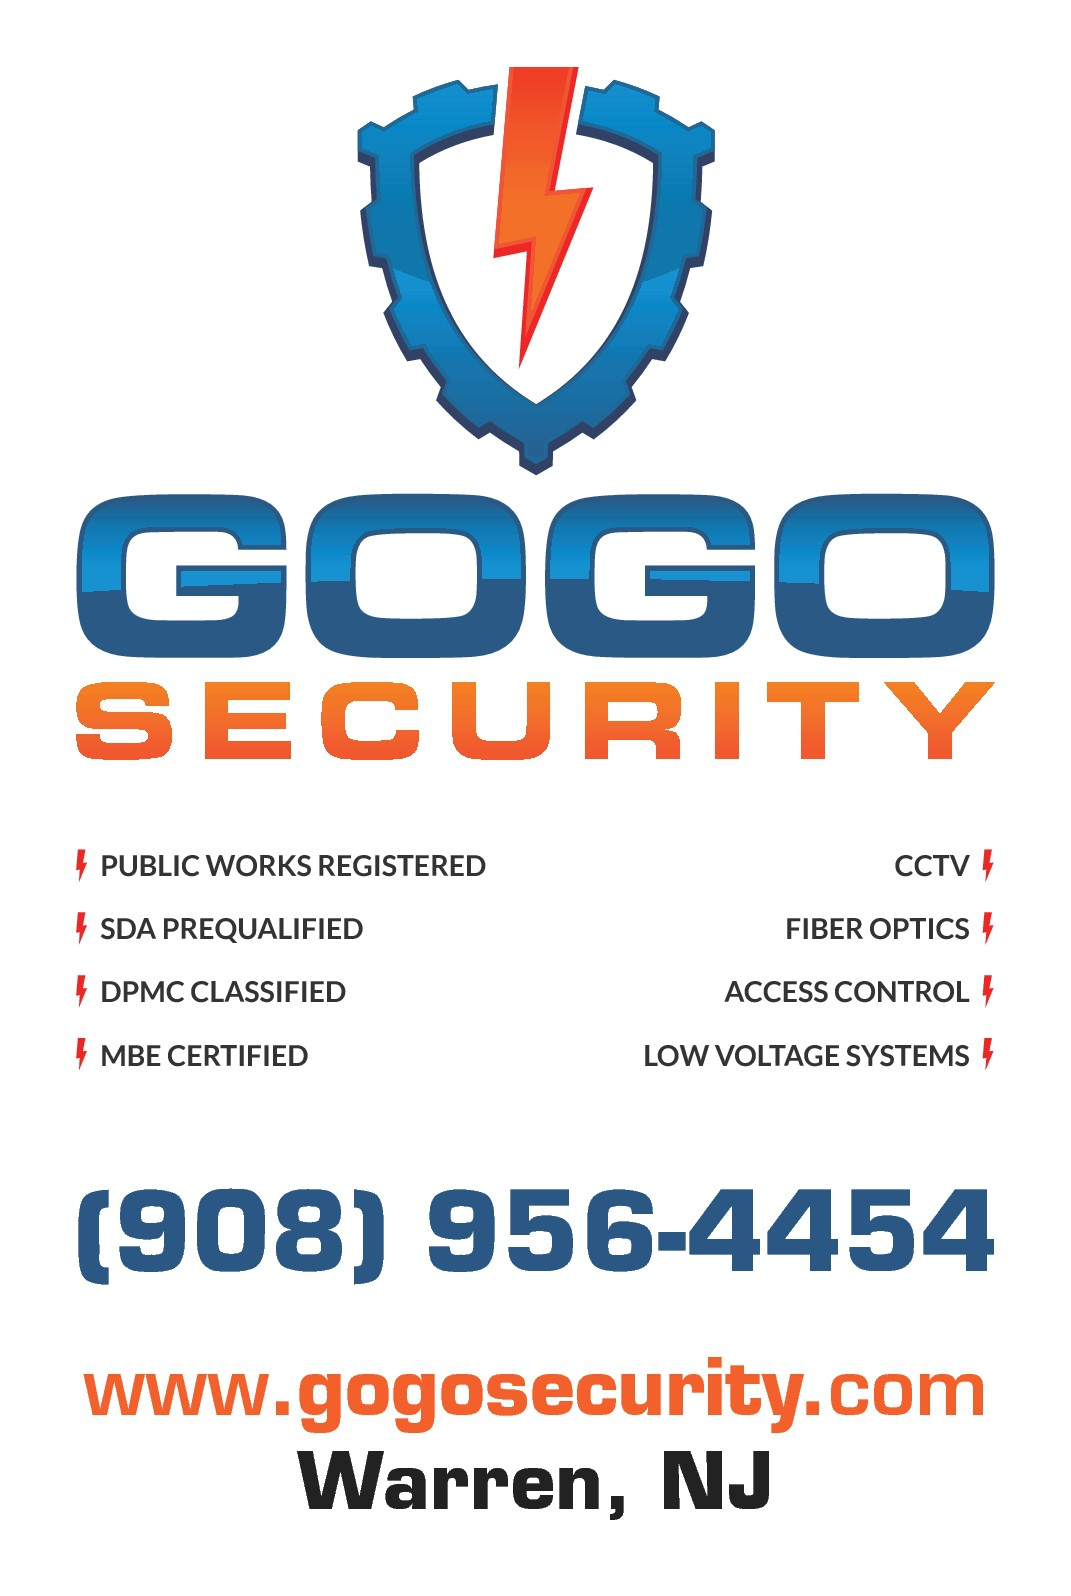 Van Signage for Security Contractor